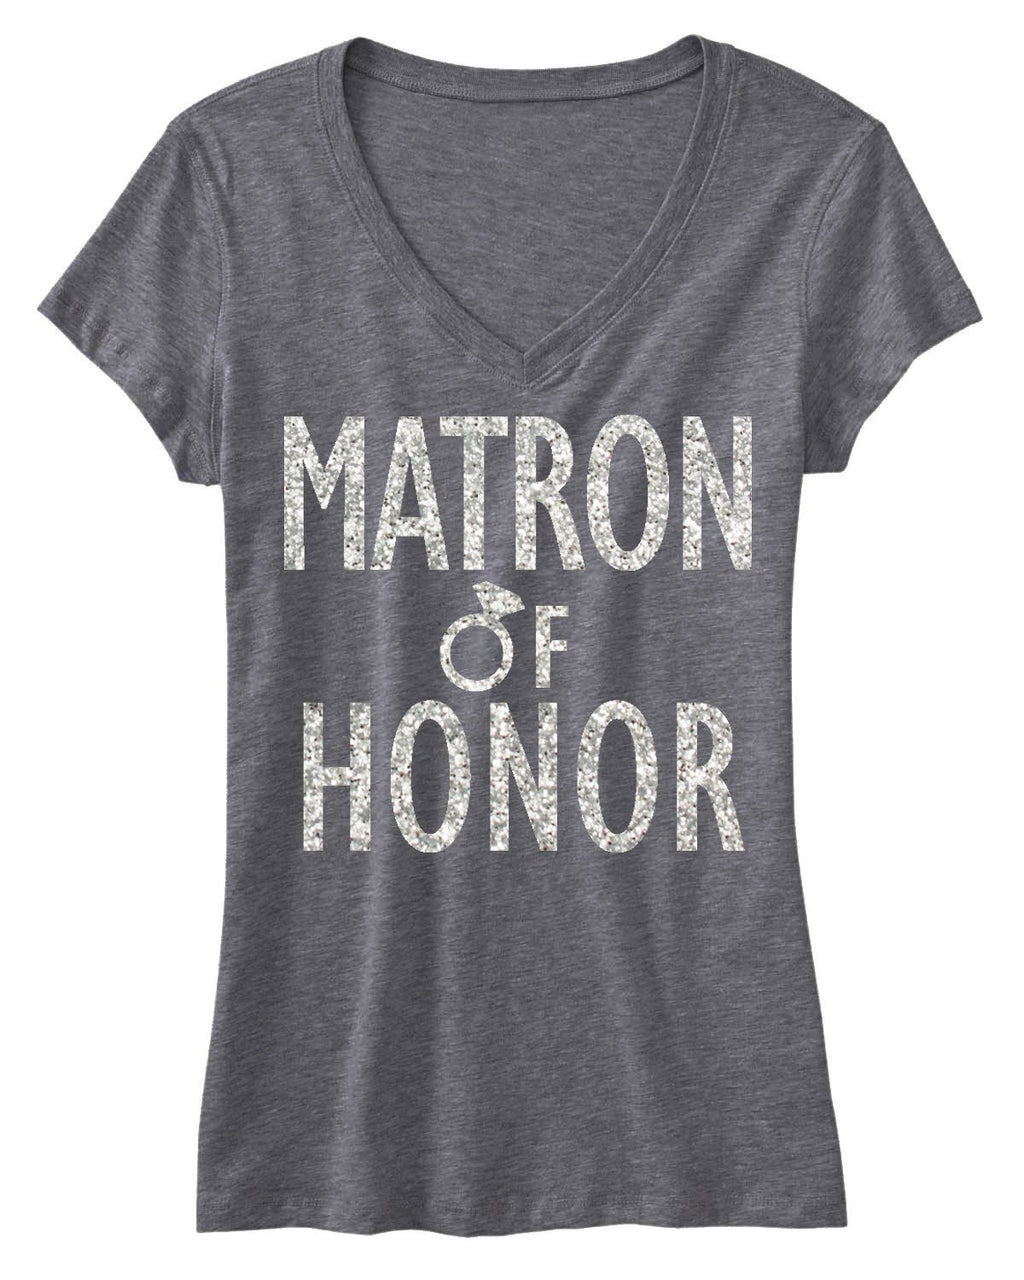 MATRON of HONOR GLITTER Bridal Shirt V-neck. Includes shipping - Expressions2u